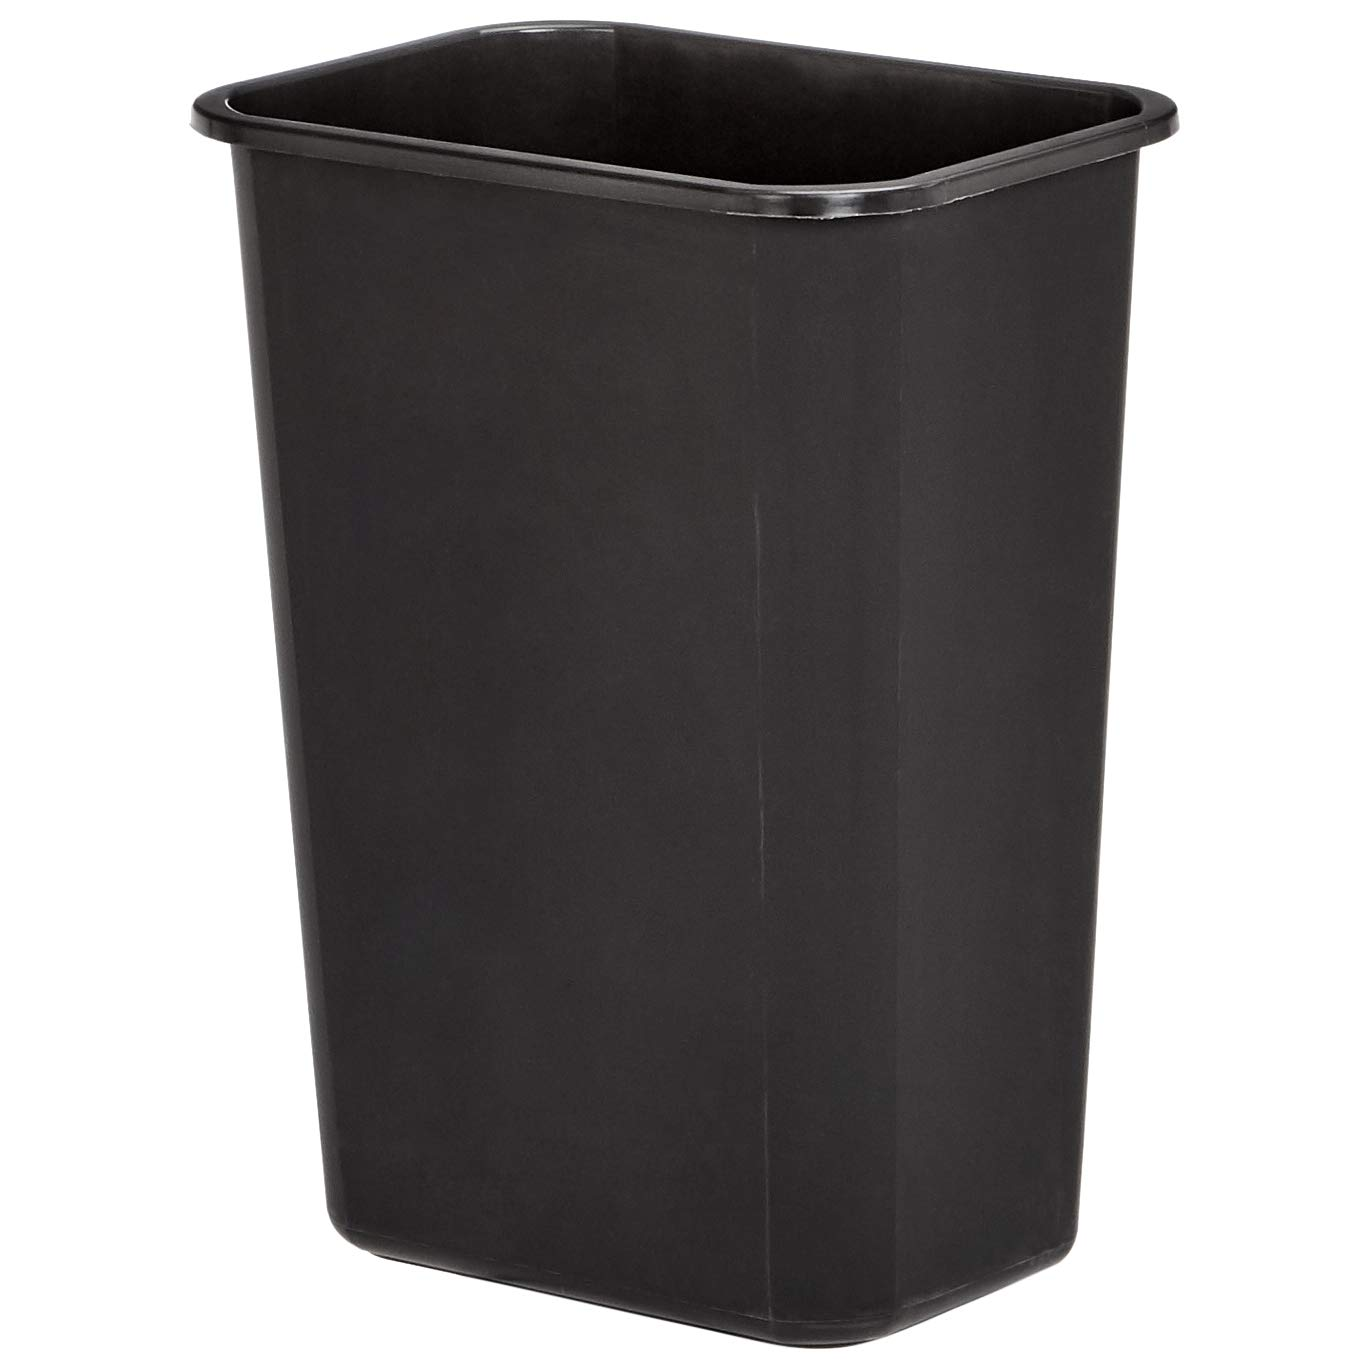 AmazonBasics 10 Gallon Commercial Waste Basket, Black, 12-Pack - WMG-00037 by AmazonBasics (Image #1)